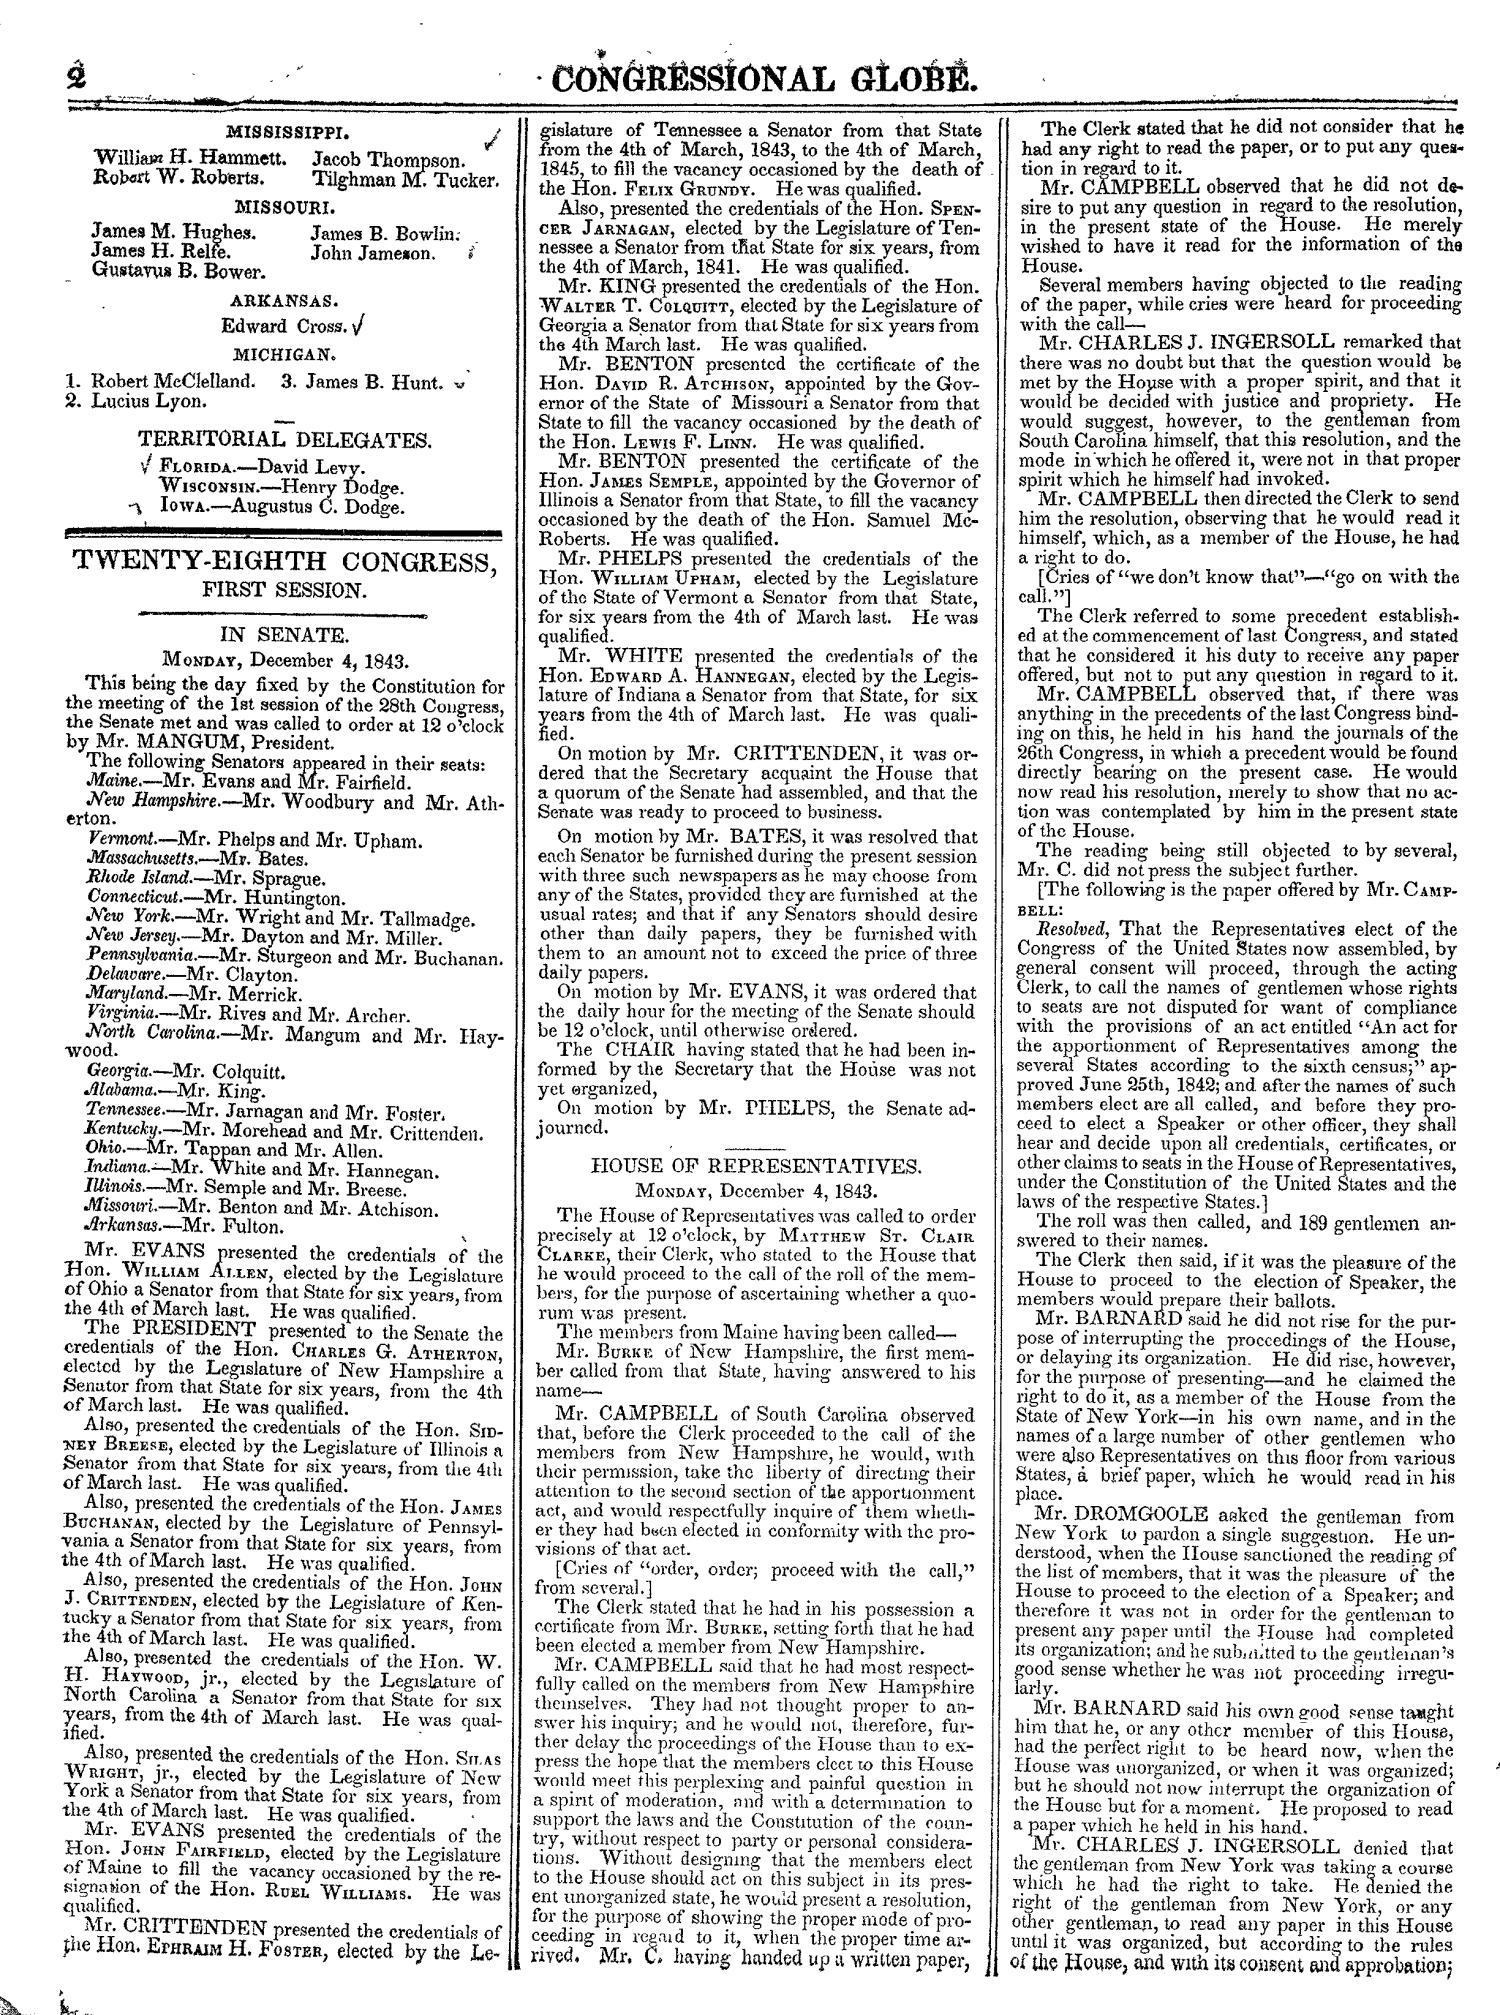 The Congressional Globe, Volume 13, Part 1: Twenty-Eighth Congress, First Session                                                                                                      2